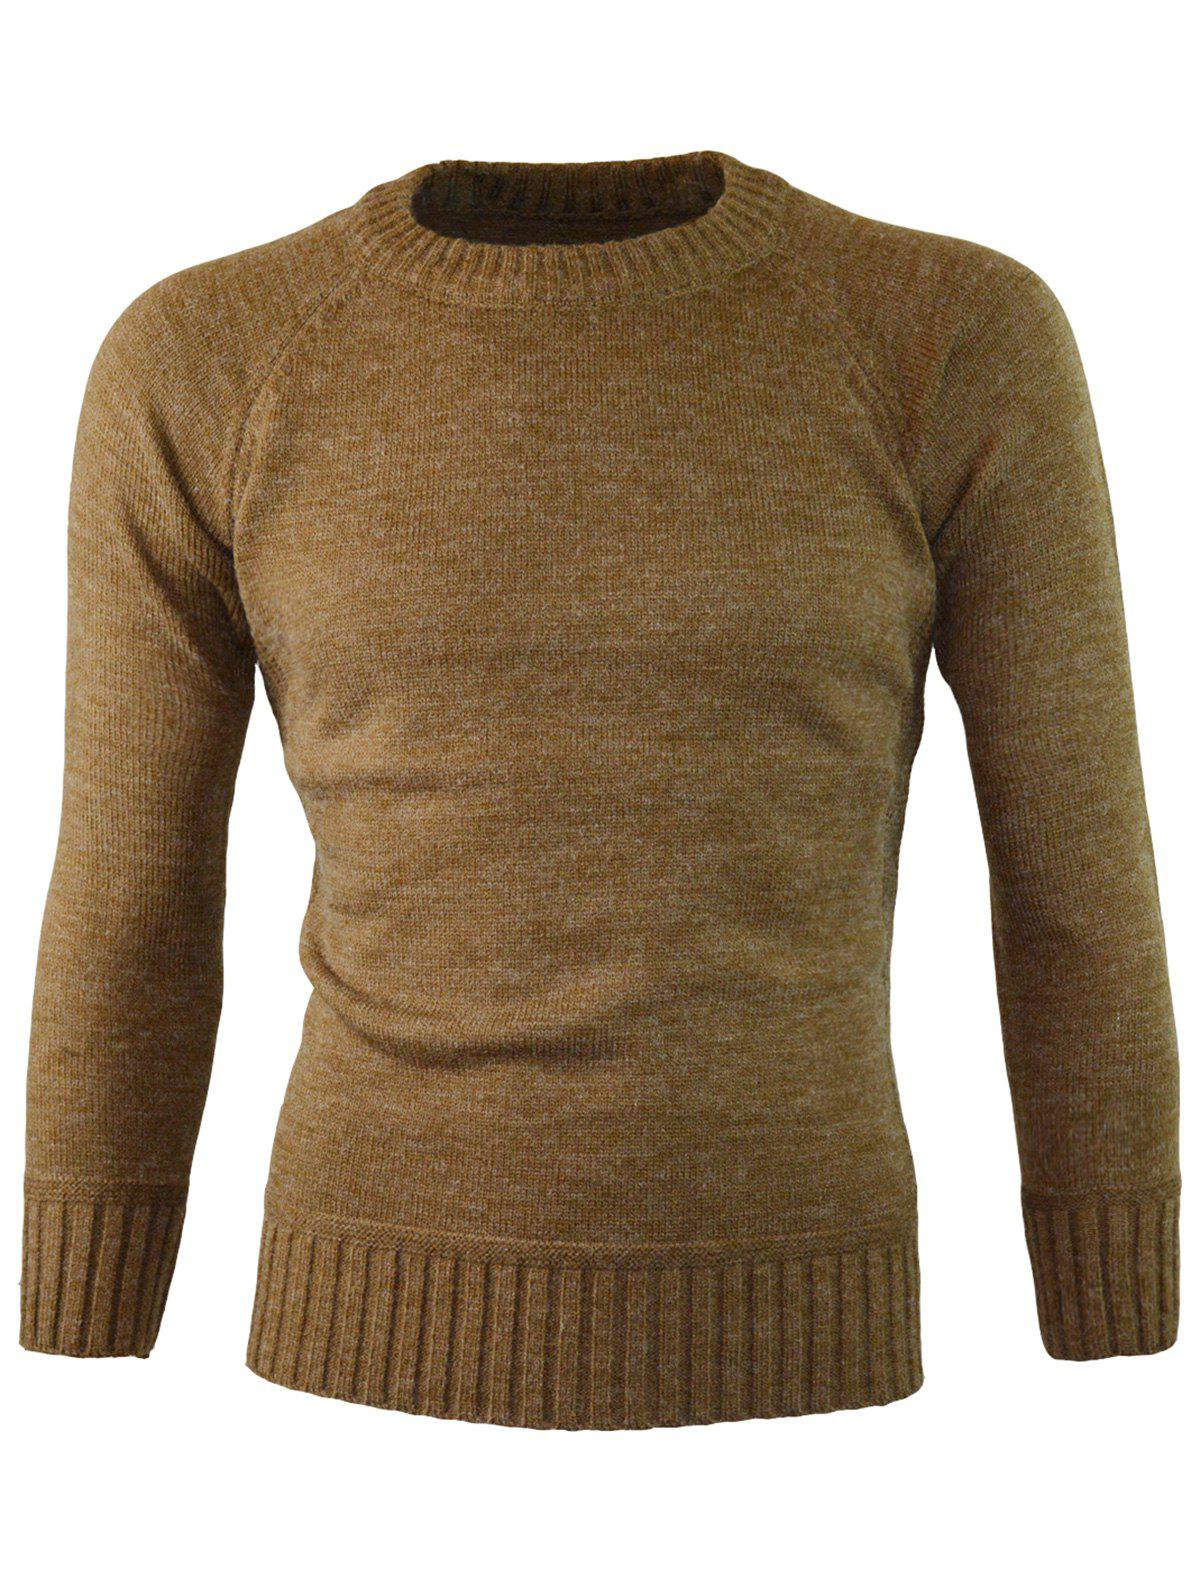 Online Ribbed Edge Knitted Crew Neck Sweater